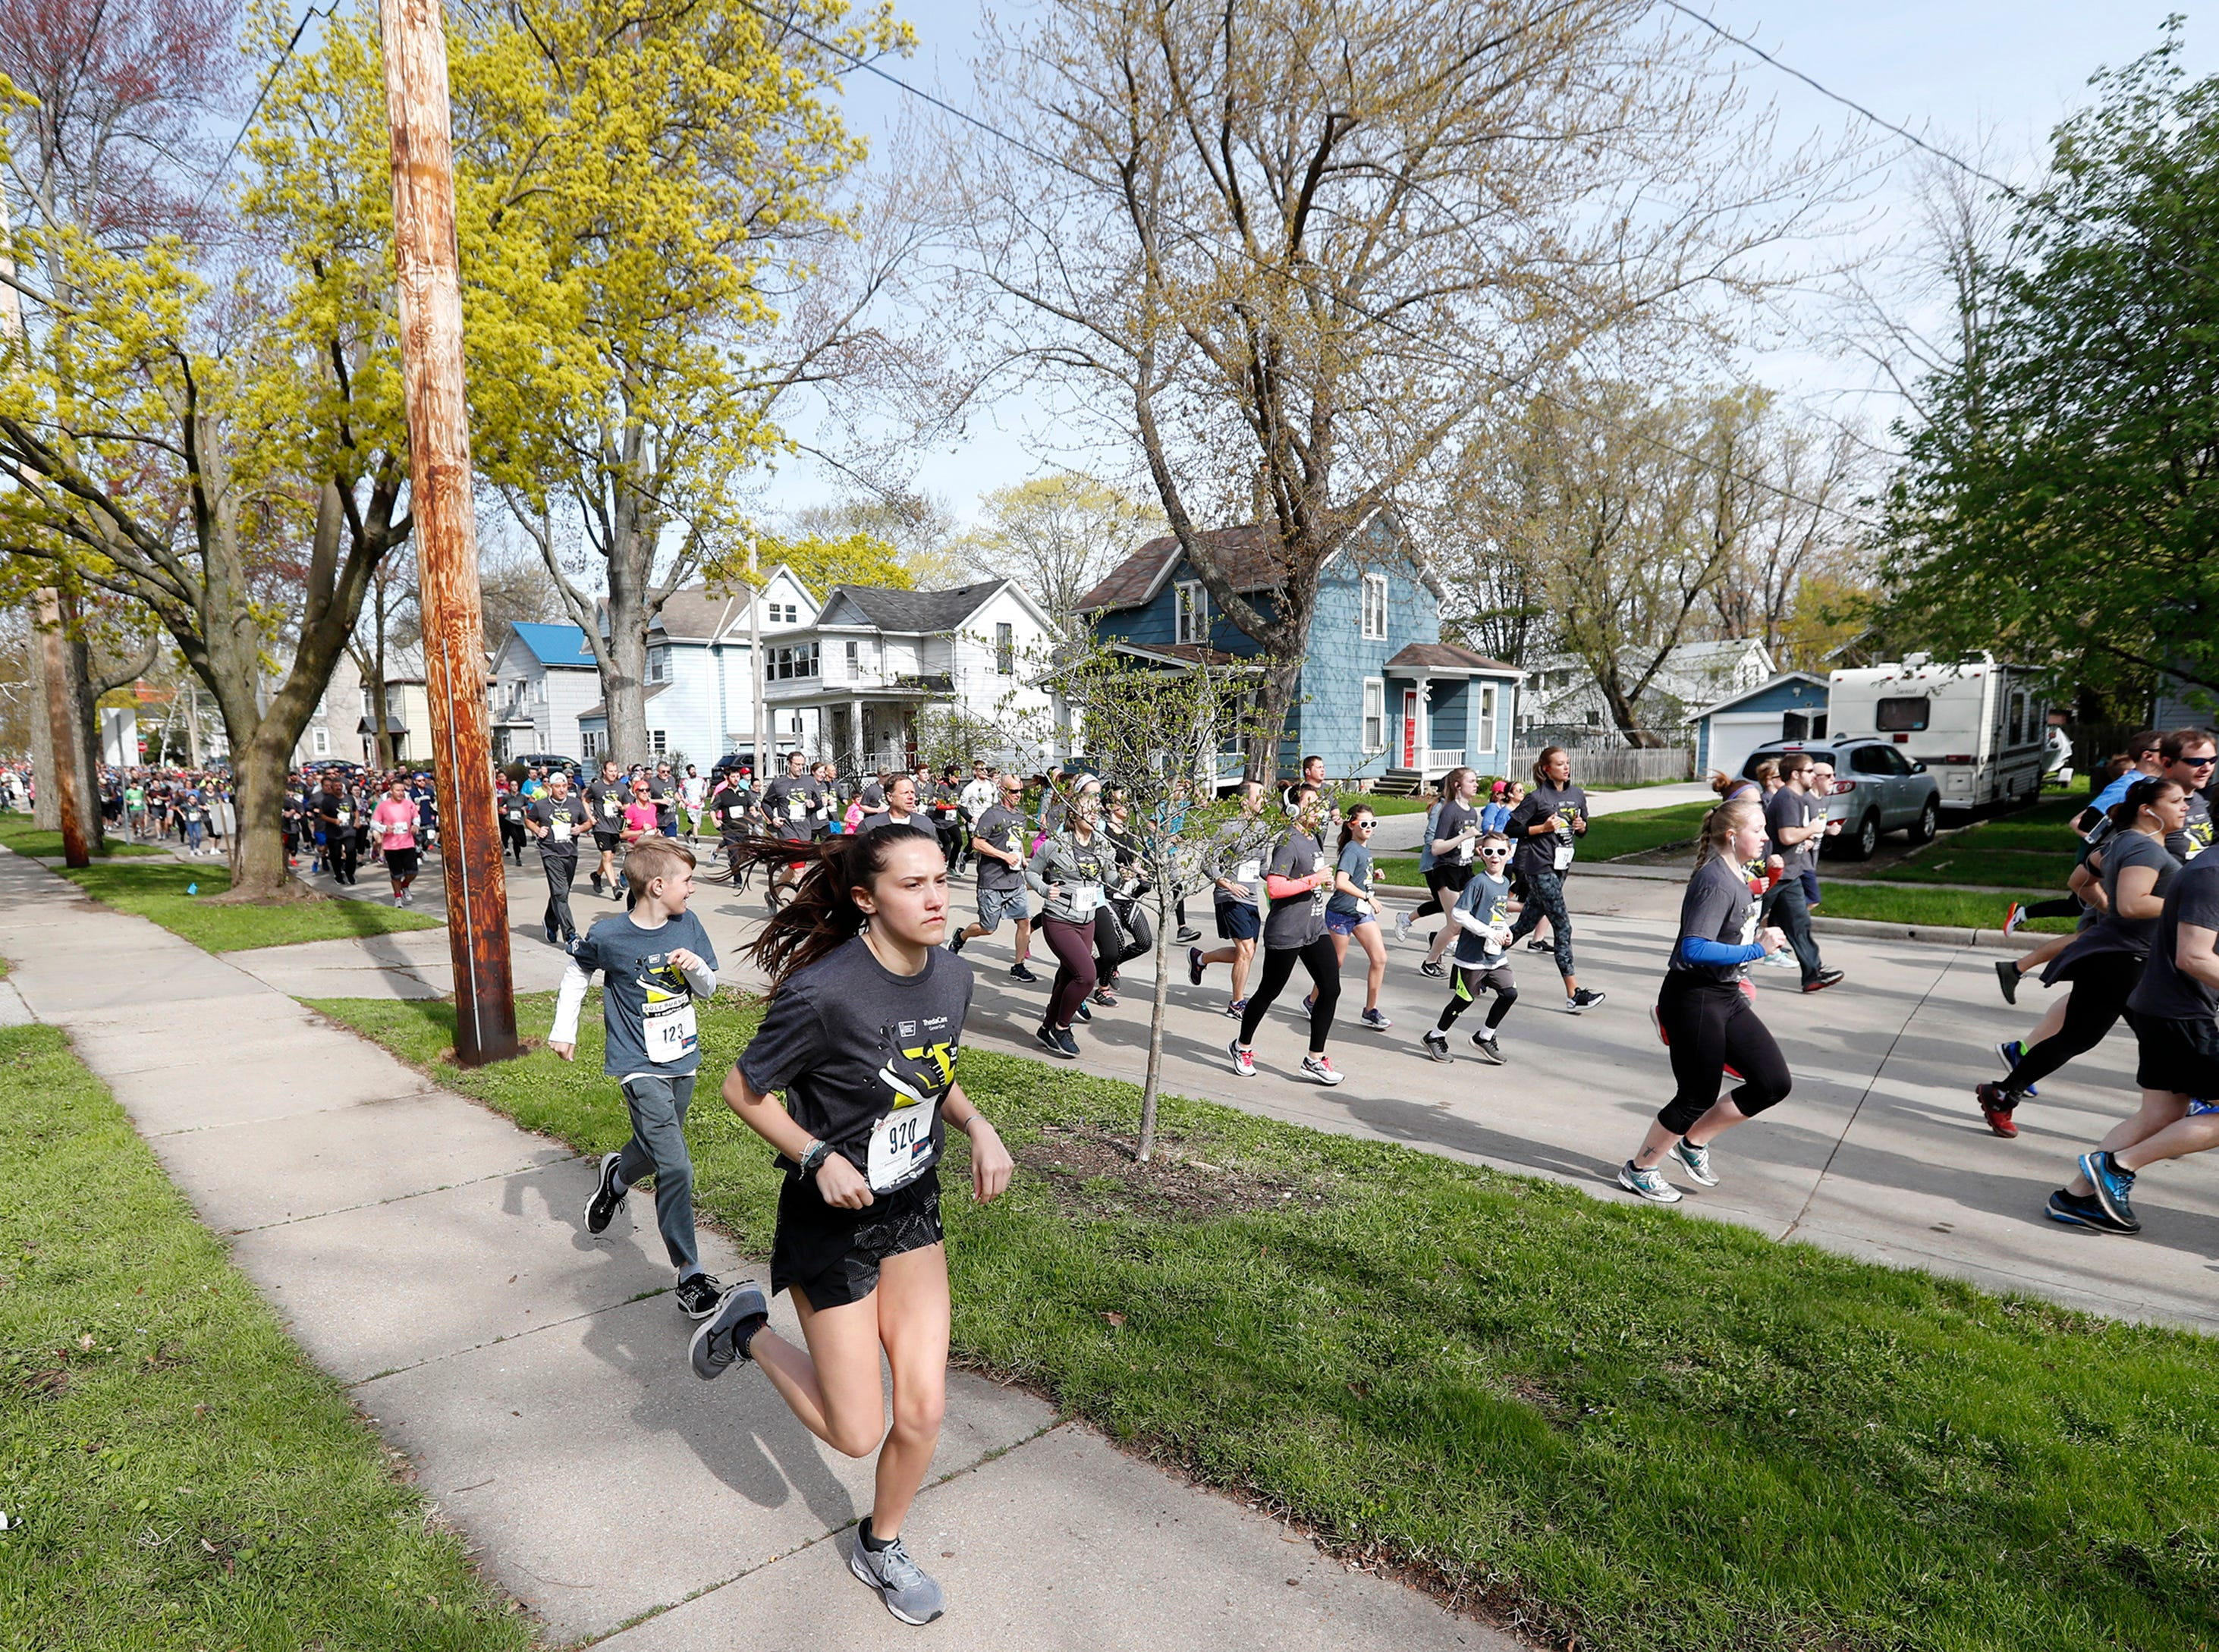 Runners take to the sidewalk just past the starting line of the Sole Burner 5K Walk-Run Saturday, May 11, 2019, in Appleton, Wis. 